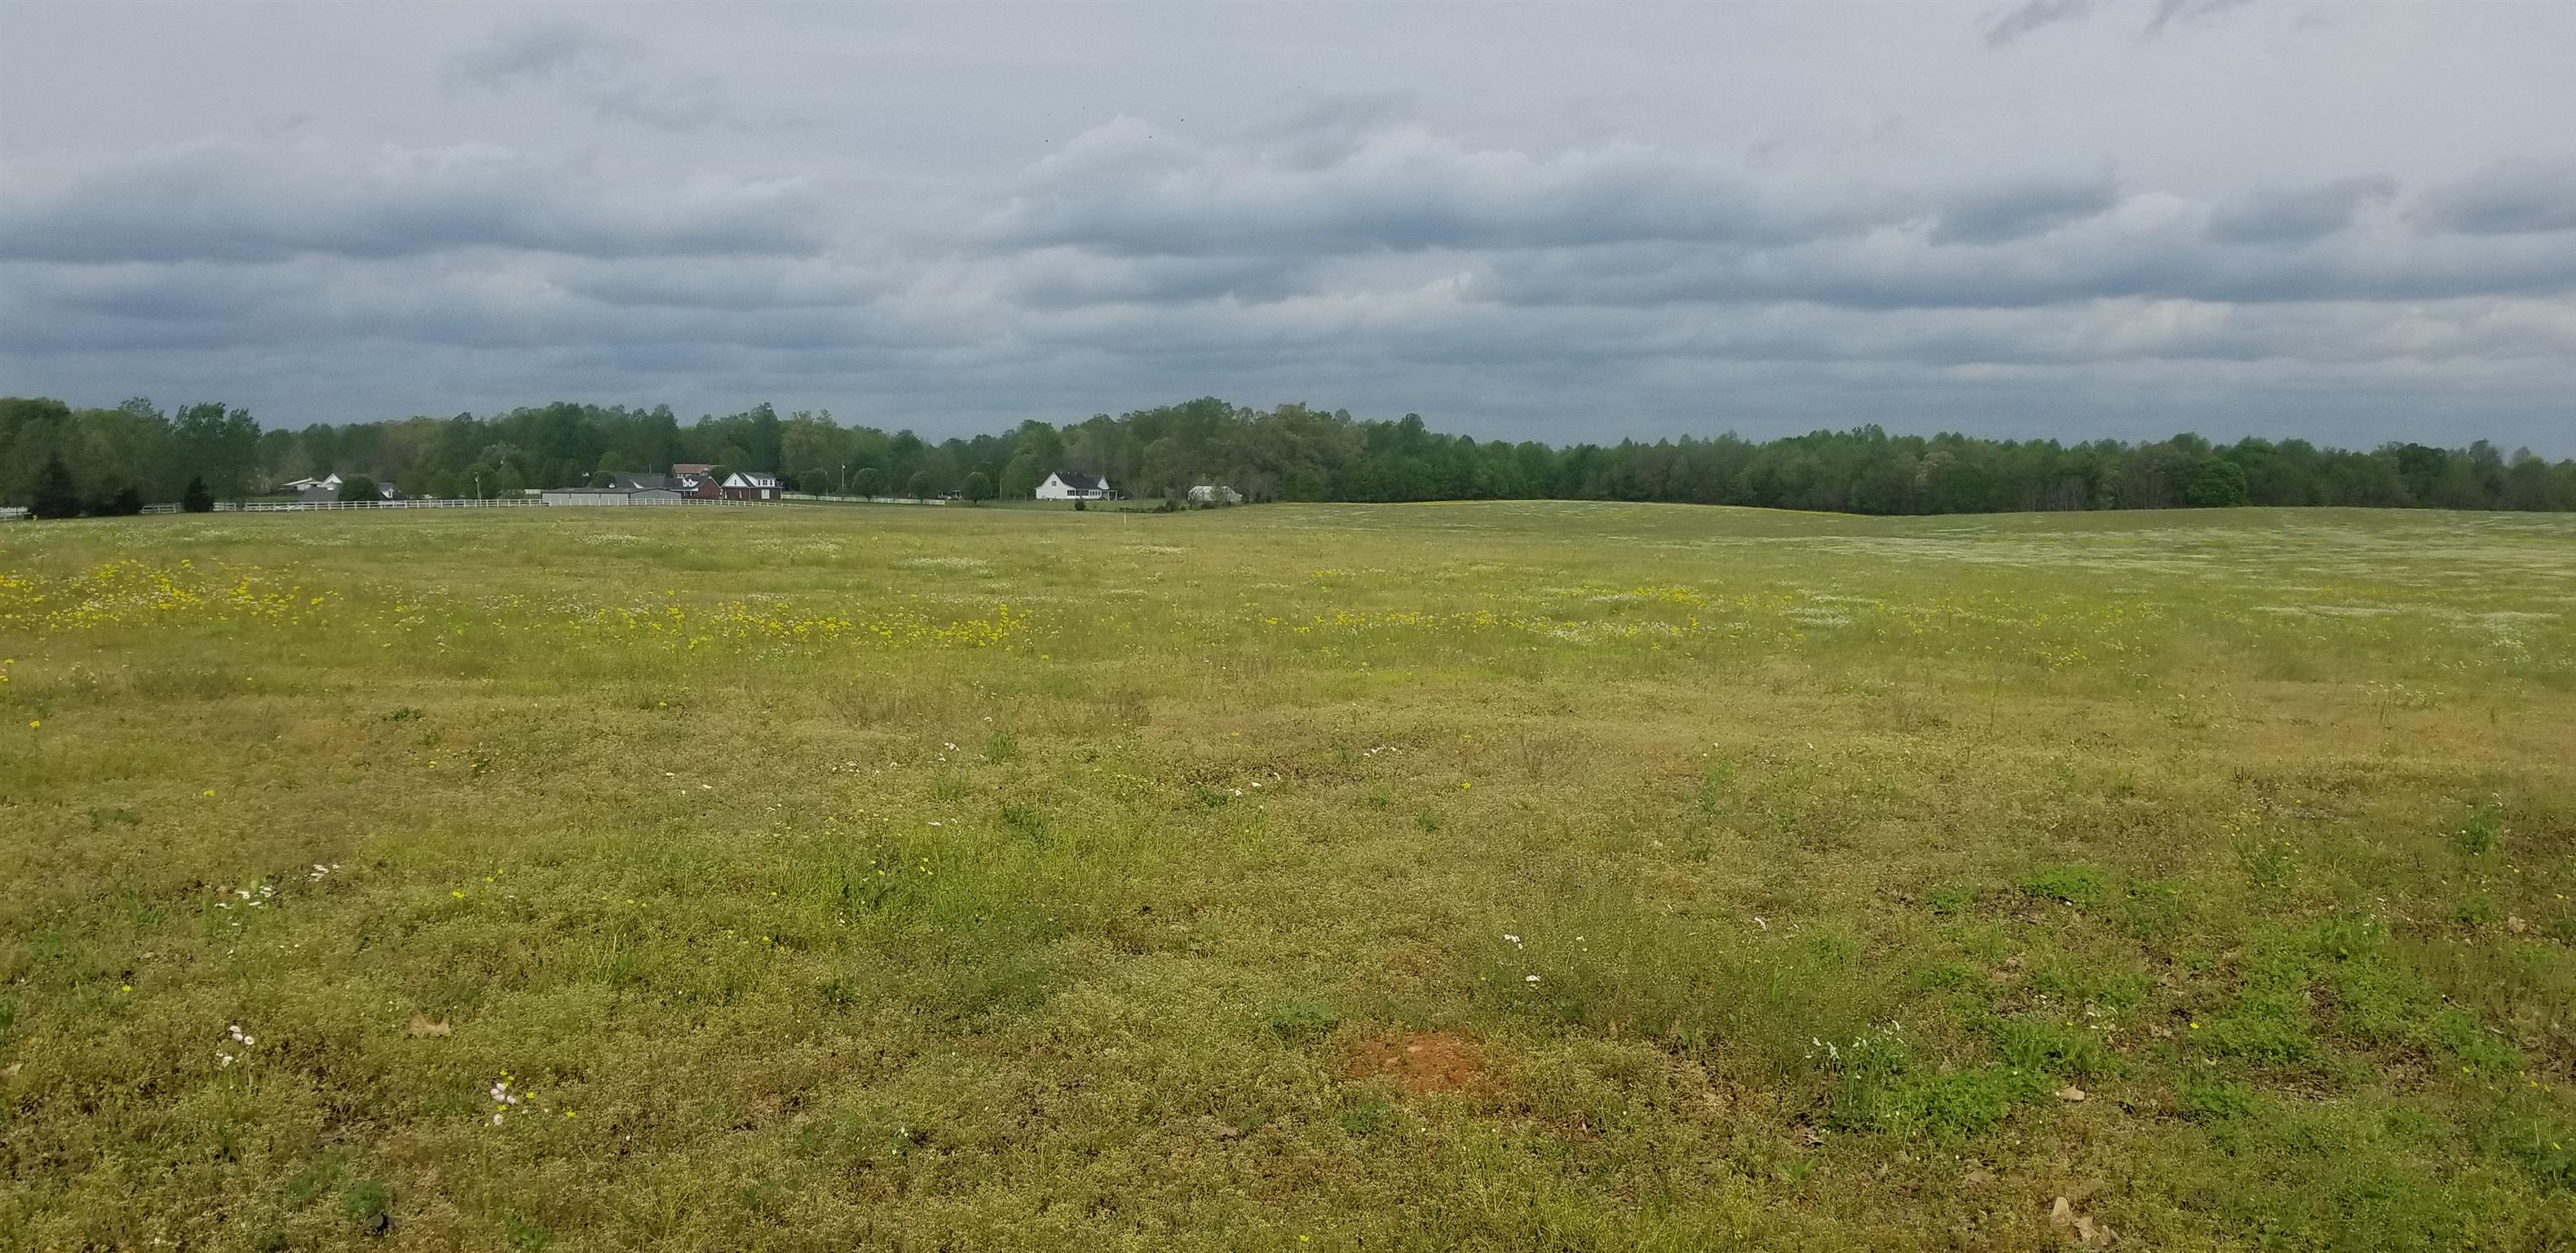 0 Cat Creek Rd, Manchester, TN 37355 - Manchester, TN real estate listing